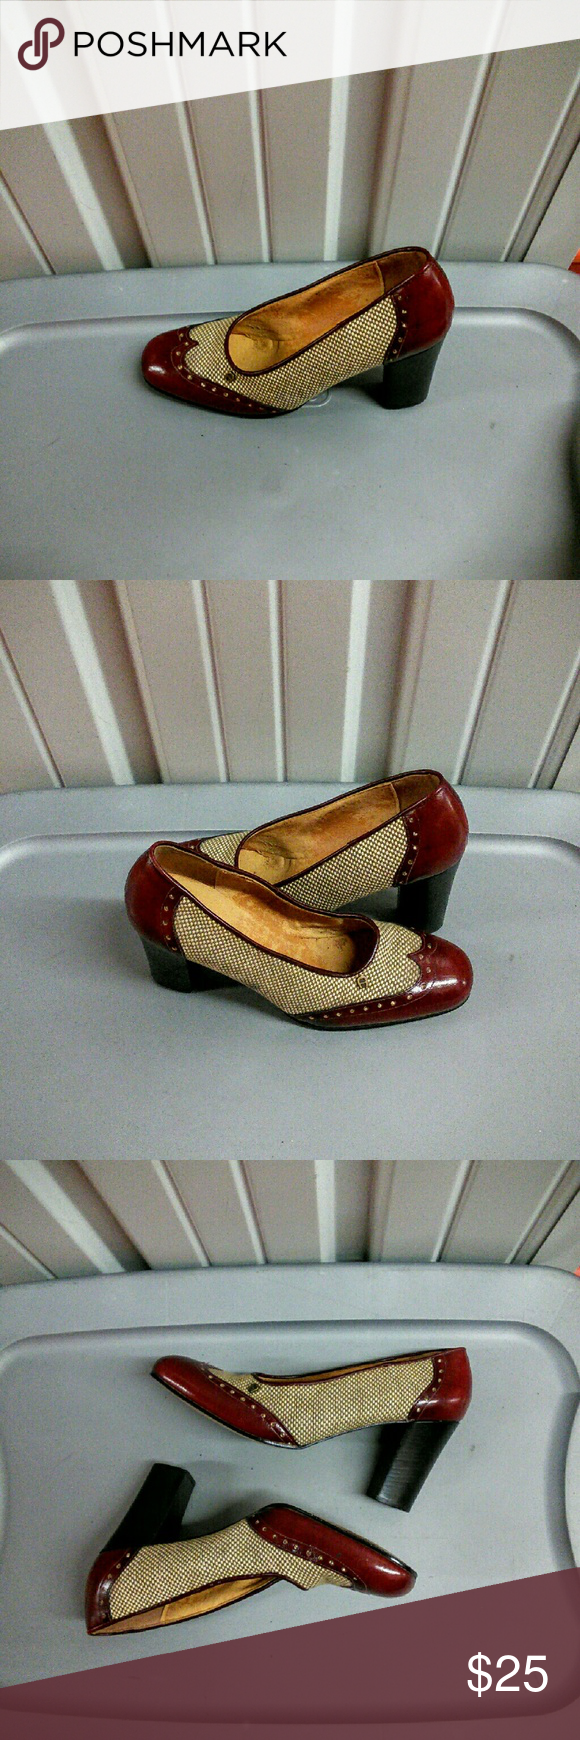 "Classic Etienne Aigner Pump Dear spots but not noticeable.3"" heel Etienne Aigner Shoes Heels"